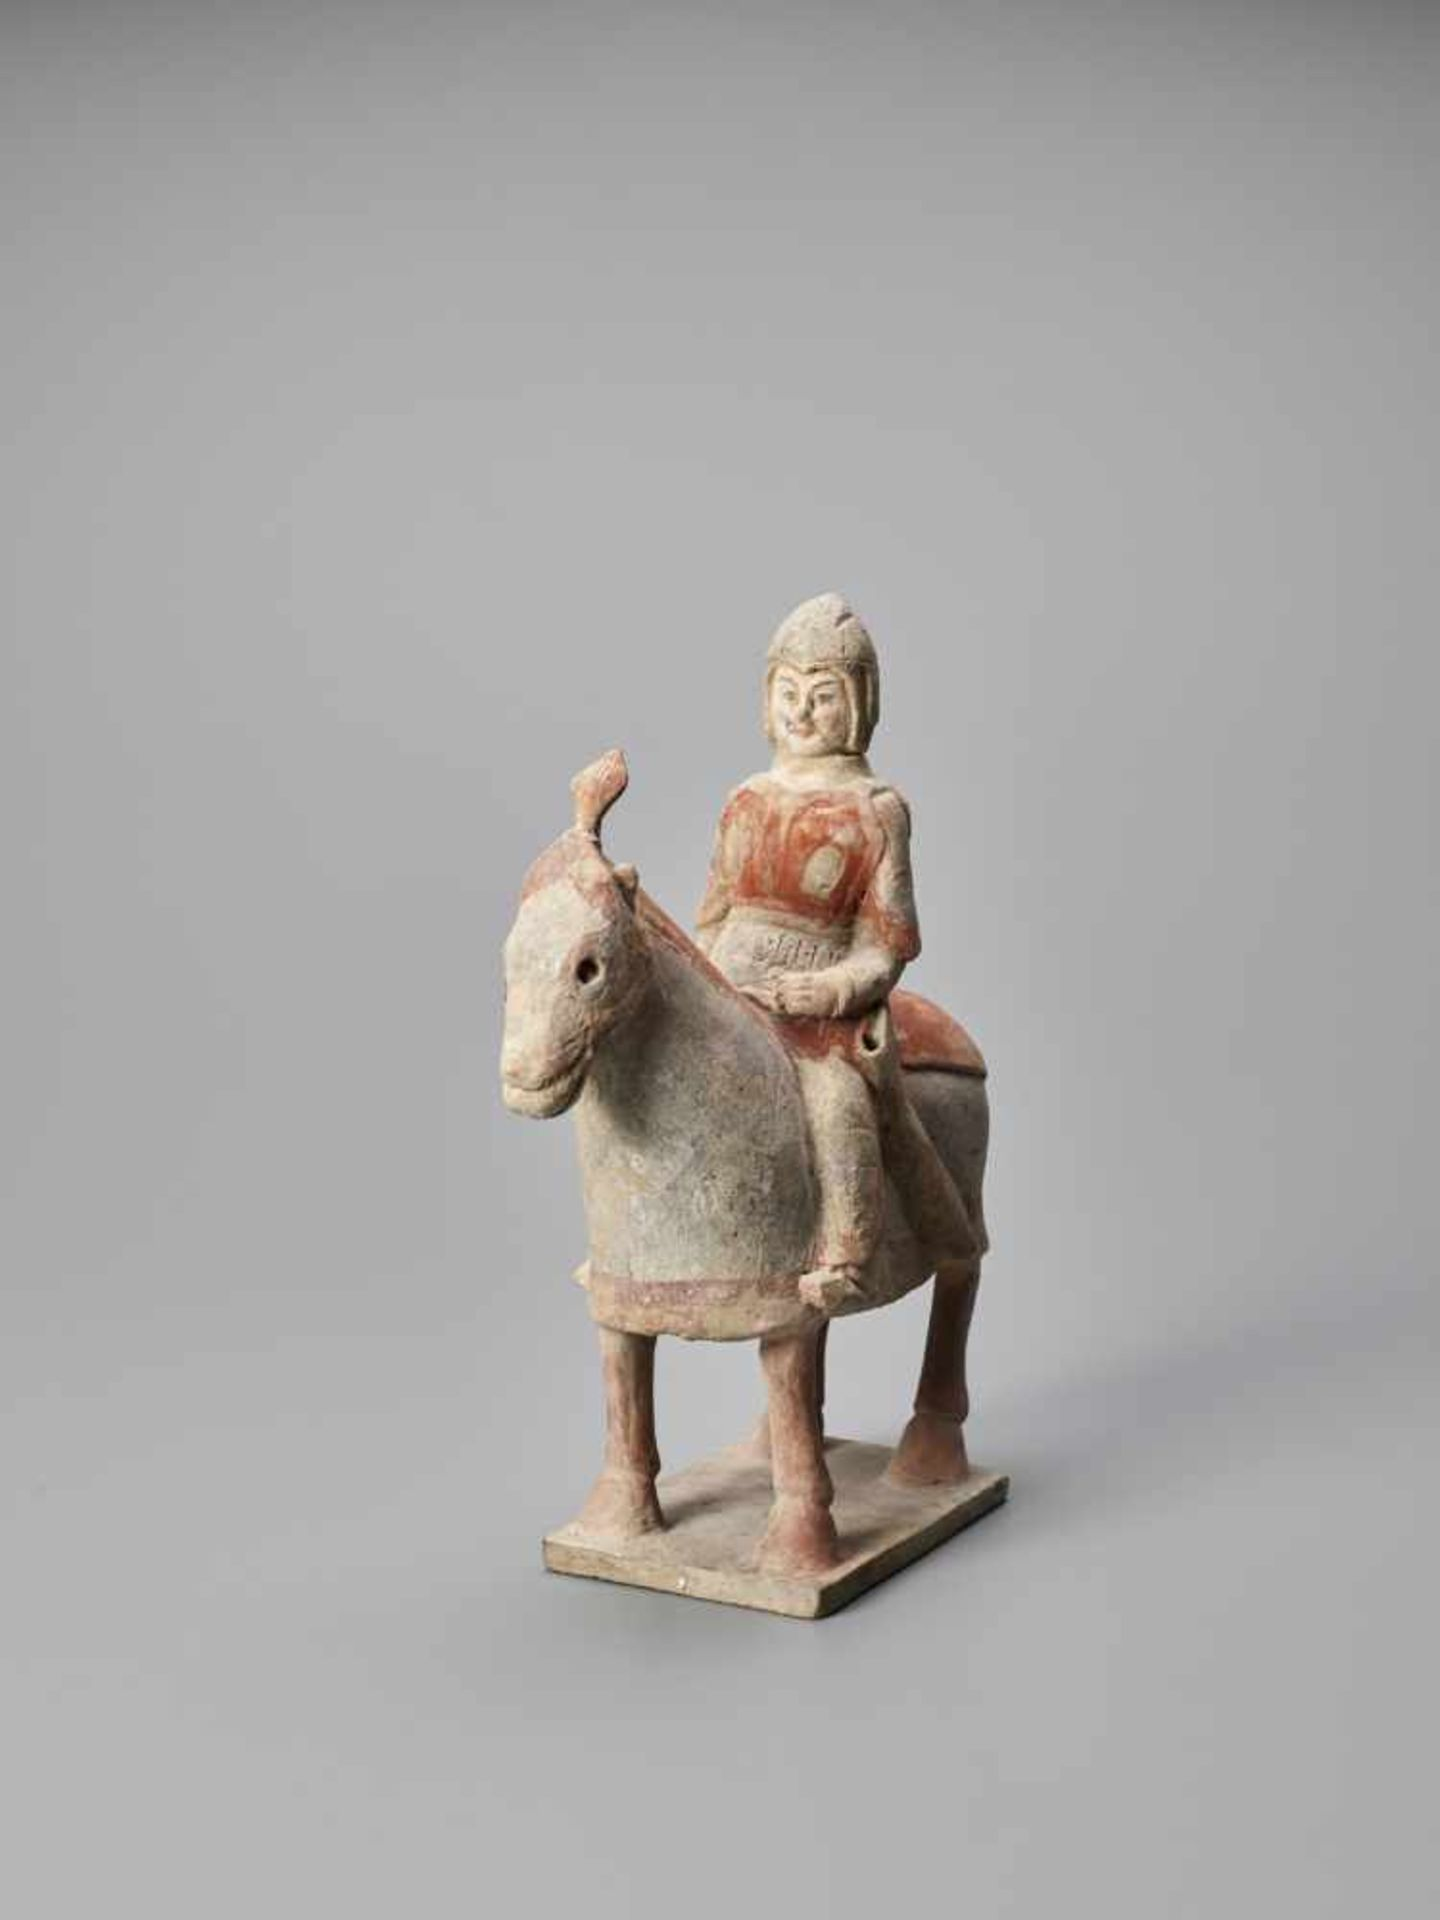 Los 391 - A TERRACOTTA FIGURE OF A HORSE AND RIDER, NORTHERN WEI